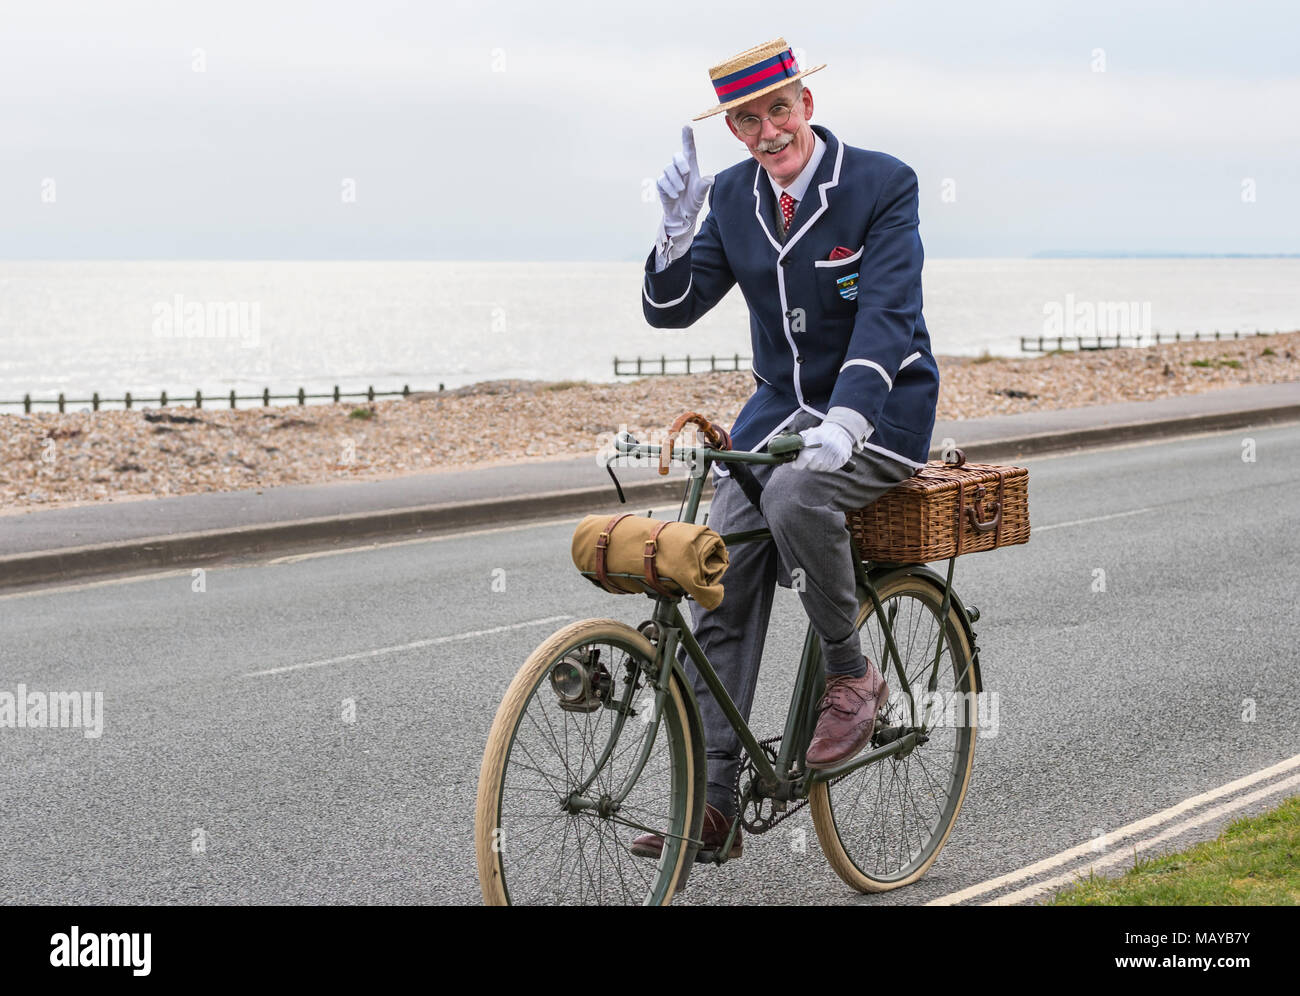 Elderly man cycling on a Victorian bicycle dressed in period costume wearing a blazer and straw boater hat, in the UK. Gentleman tipping hat. - Stock Image